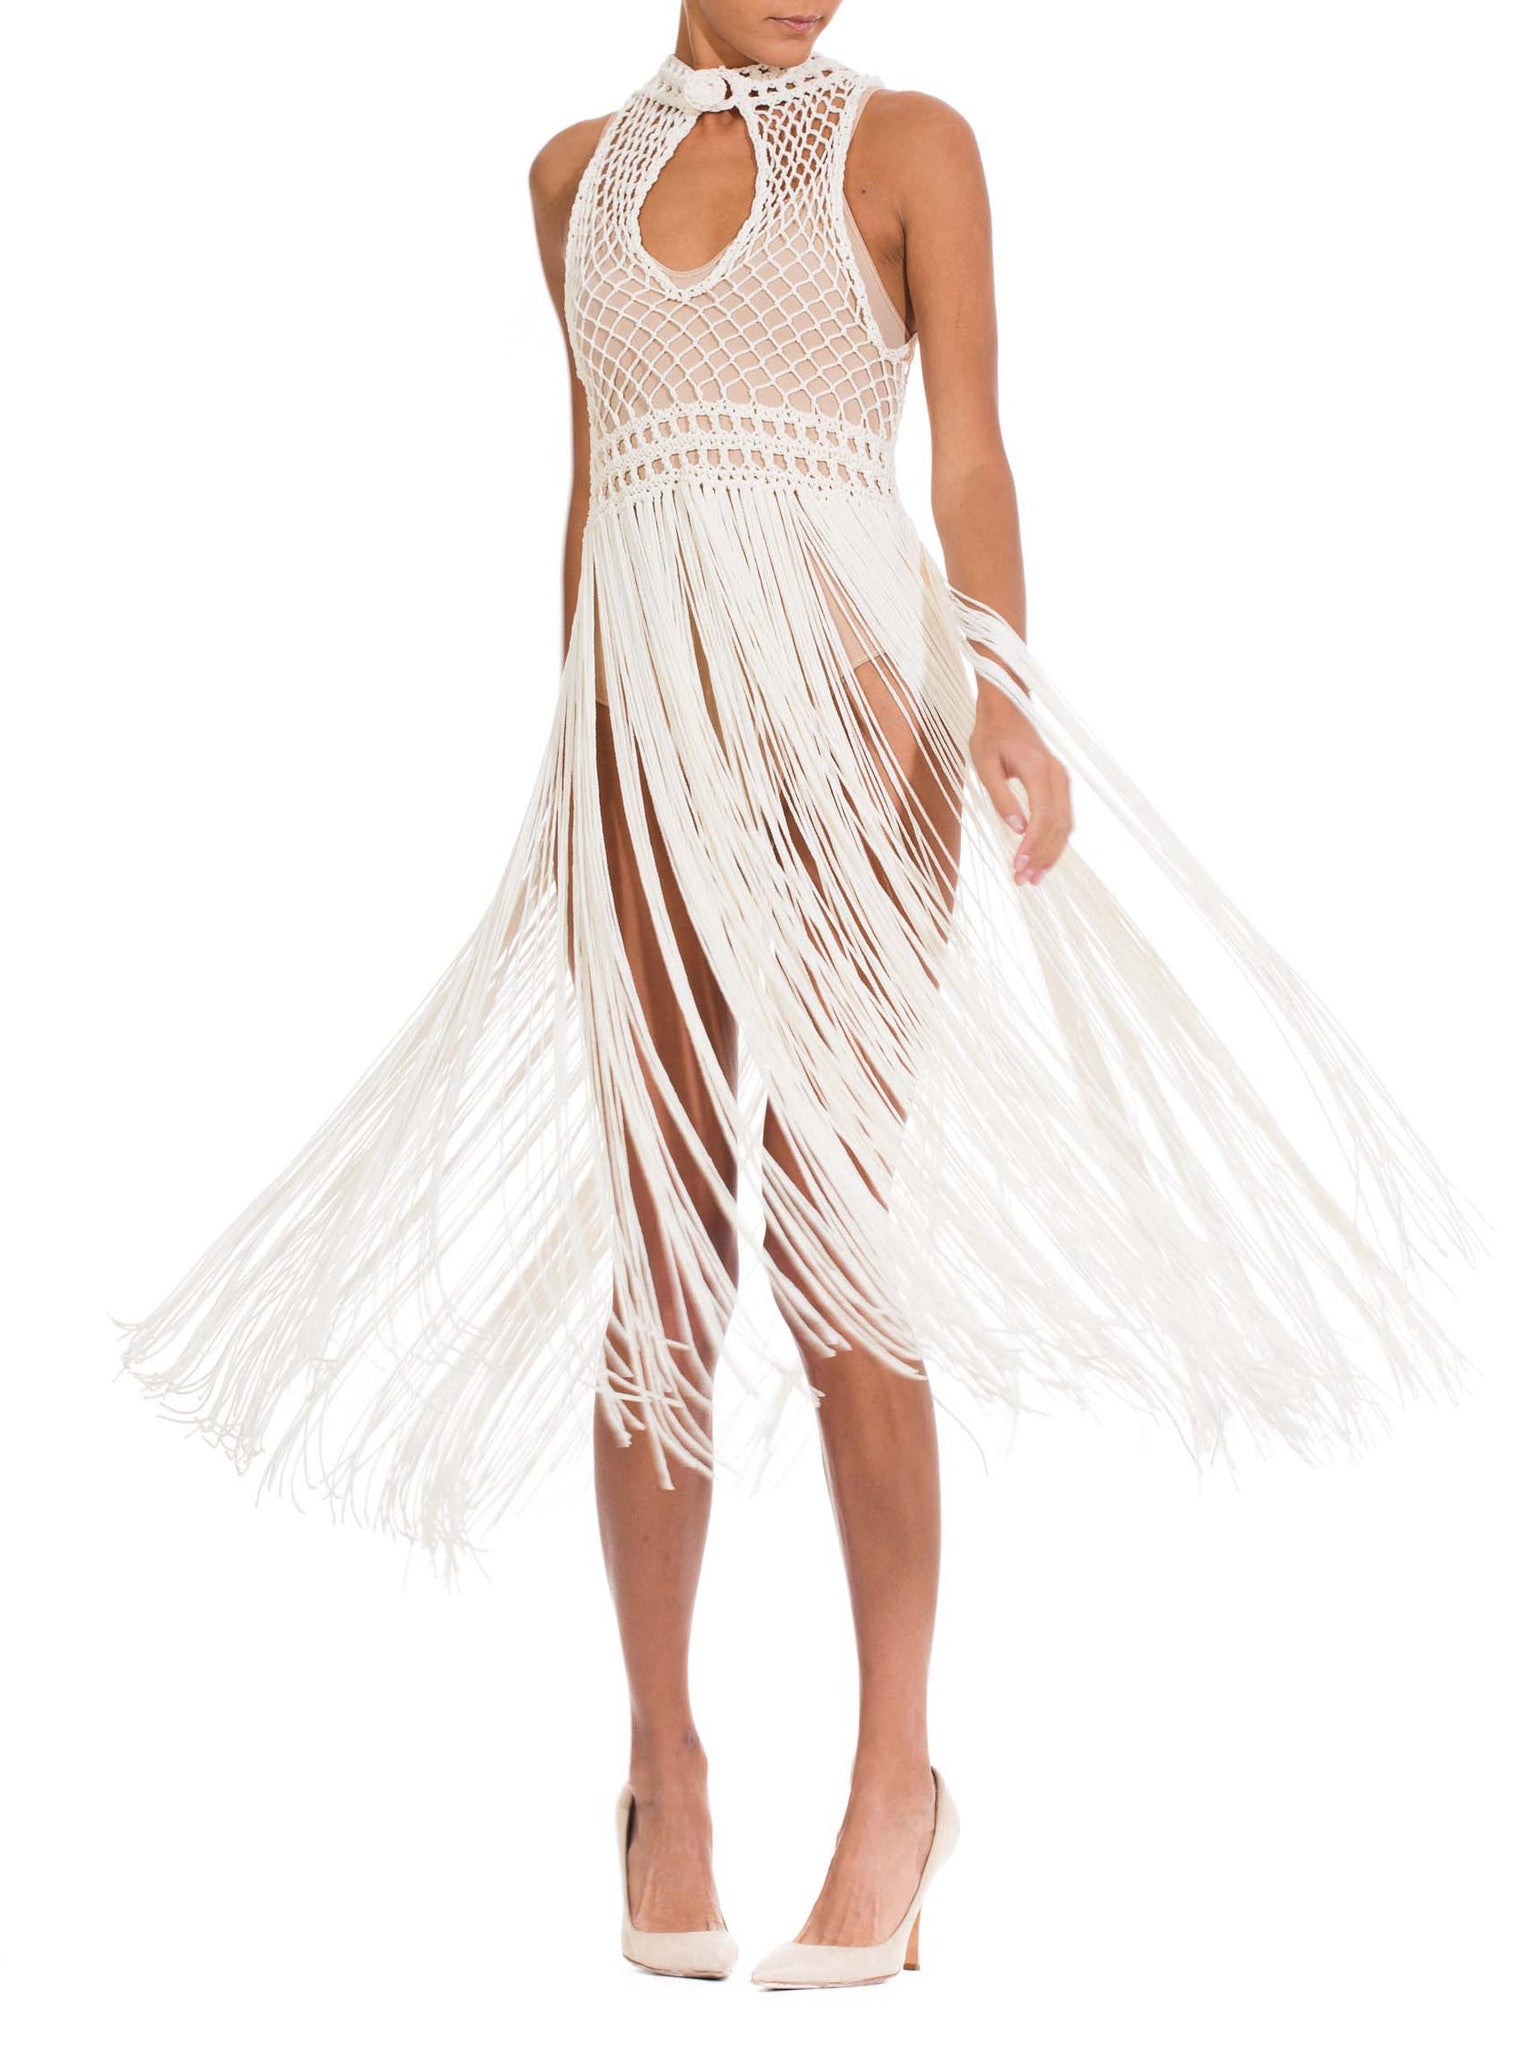 1970's Vintage White Macramé Fringe Dress